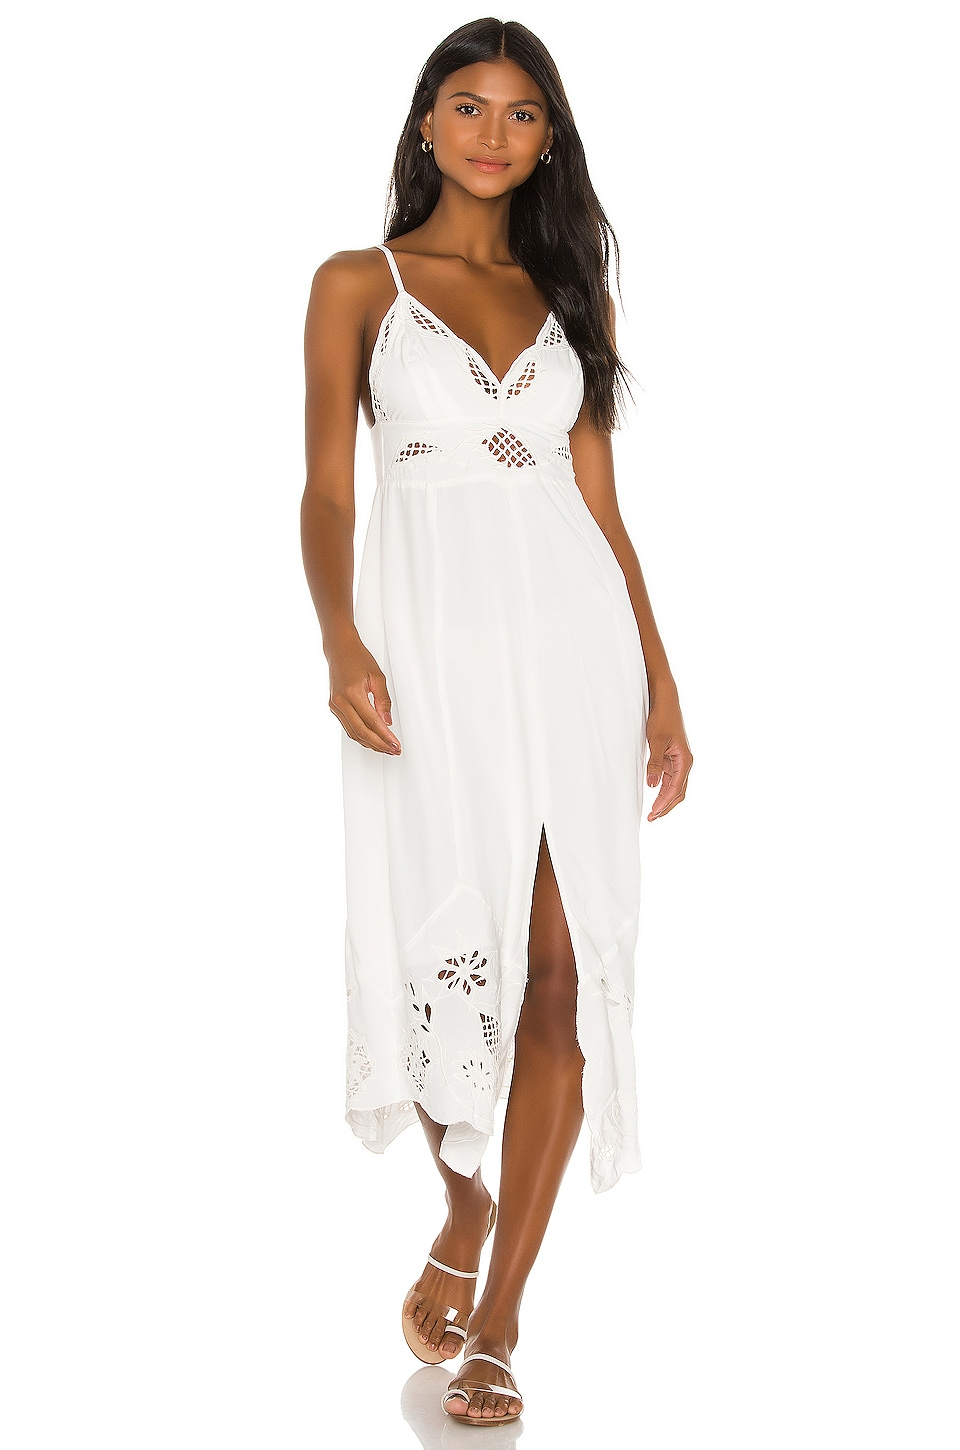 Vix Swimwear Pery Midi Dress in White